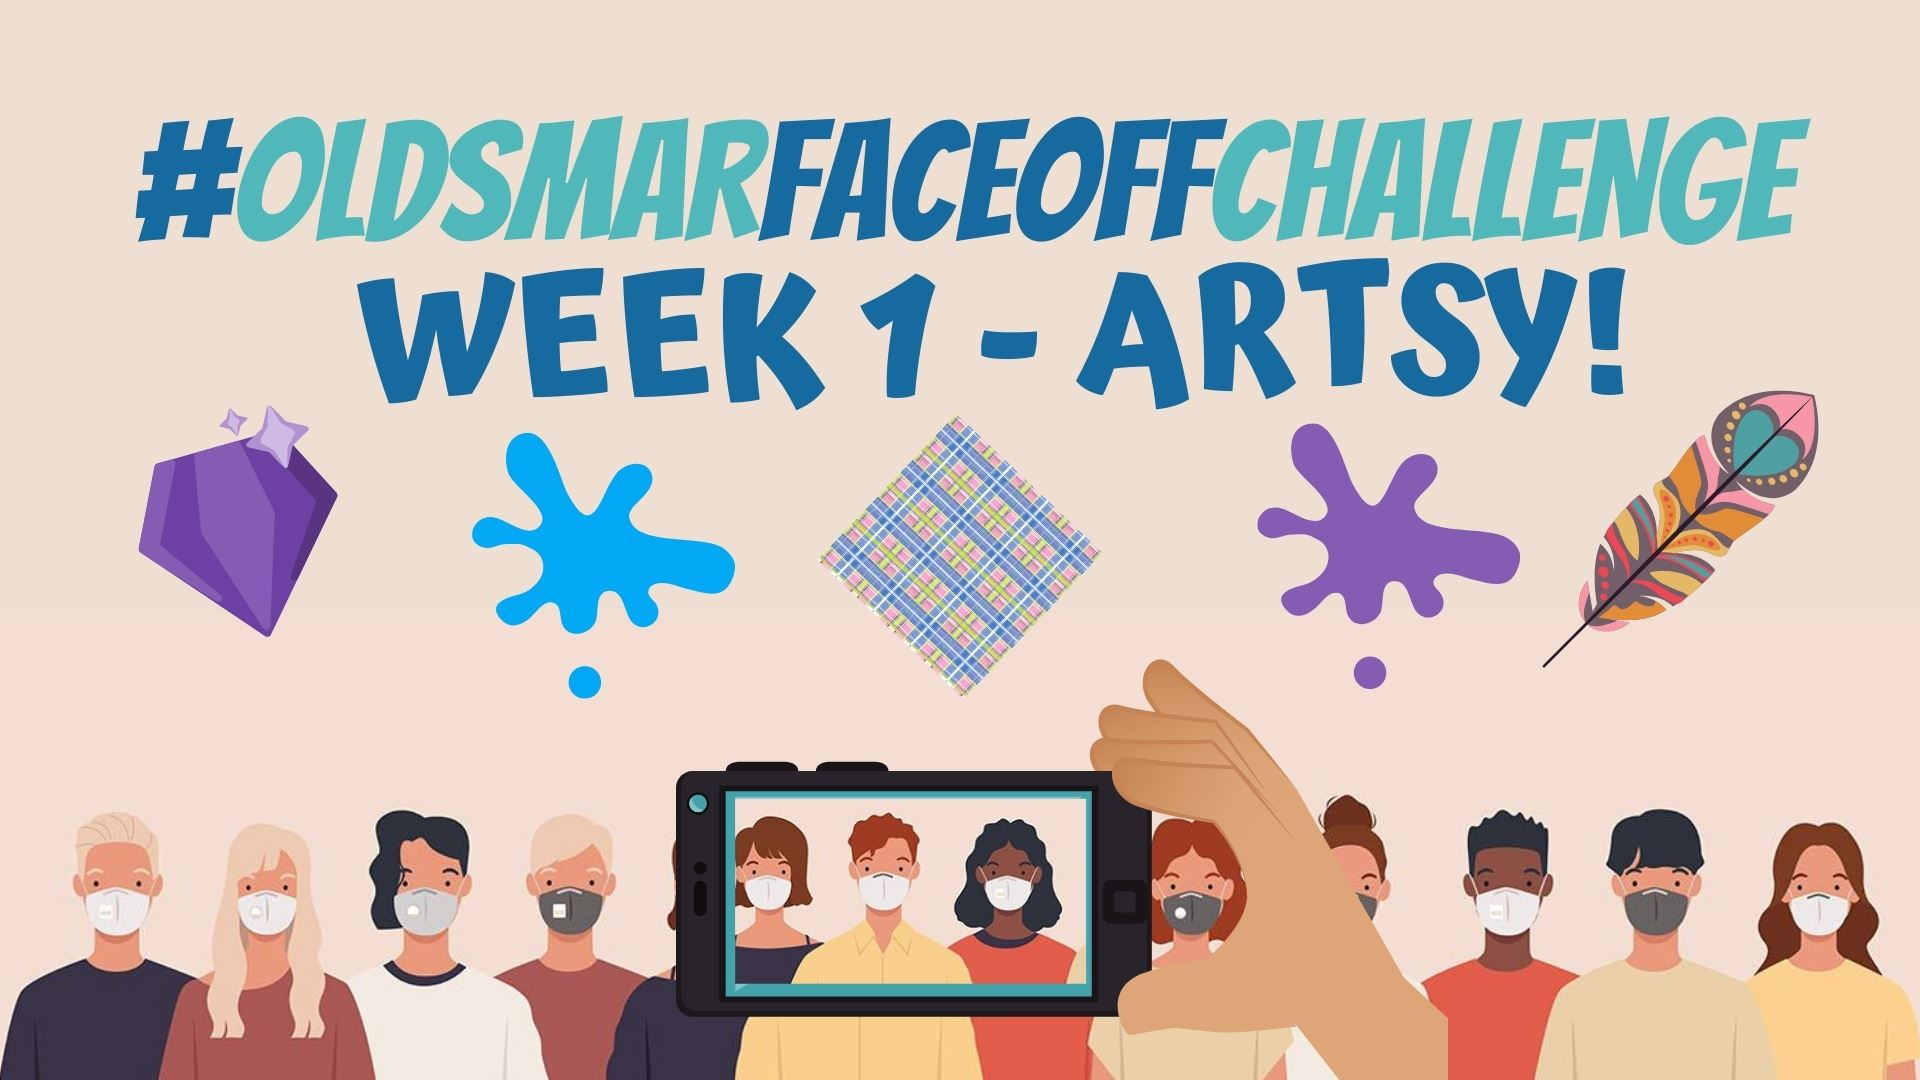 FACE OFF CHALLENGE WK 1 ARTSY (1)